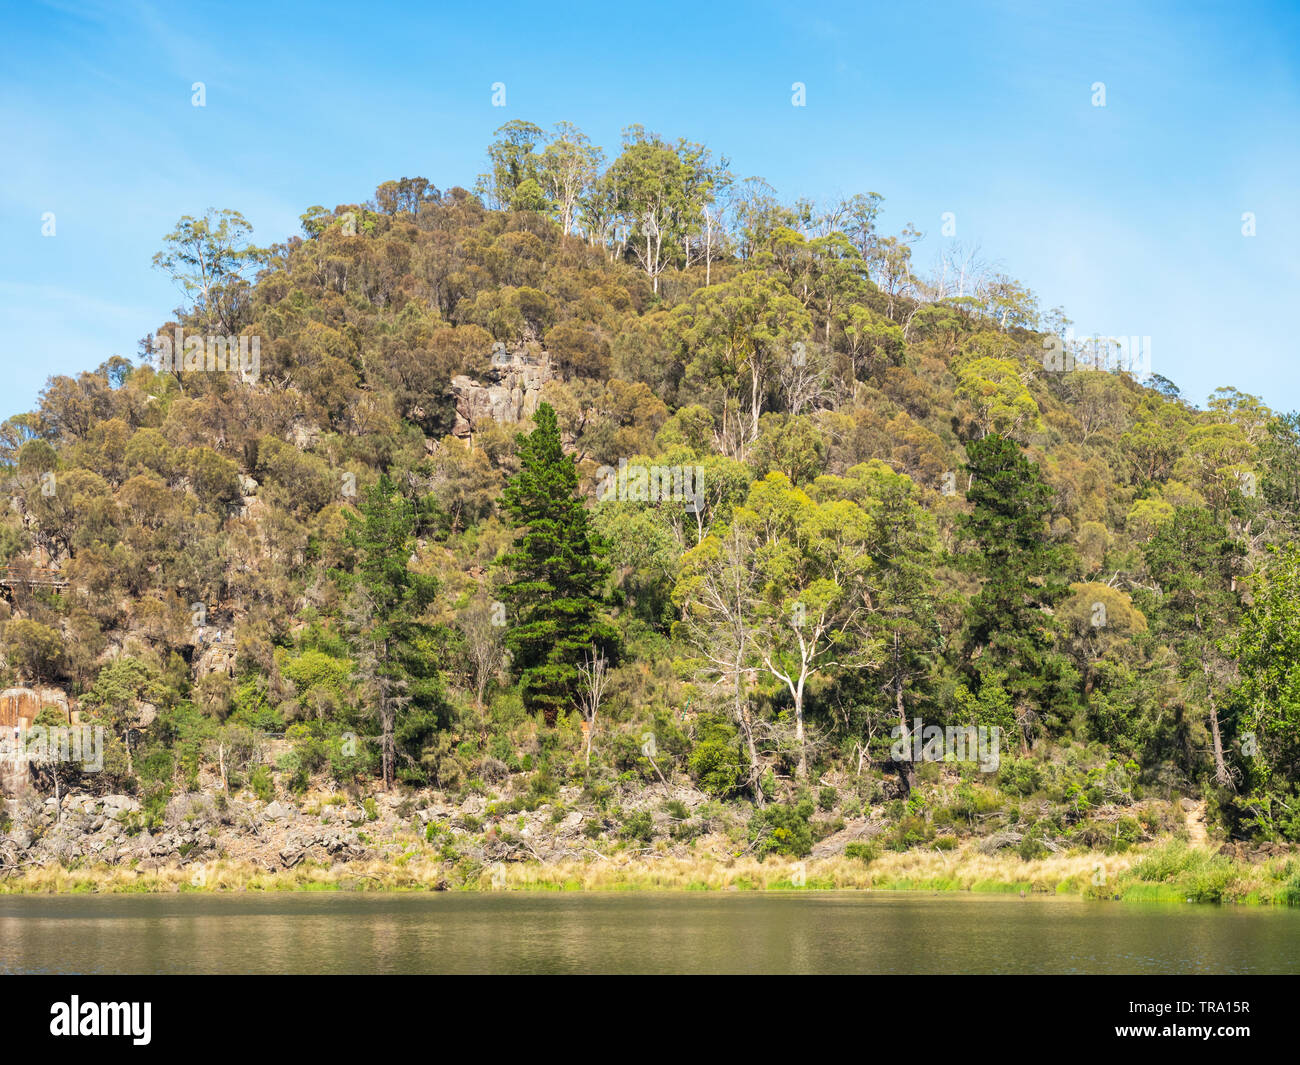 First Basin in Cataract Gorge, in the lower section of the South Esk River in Launceston, Tasmania, Australia. Stock Photo